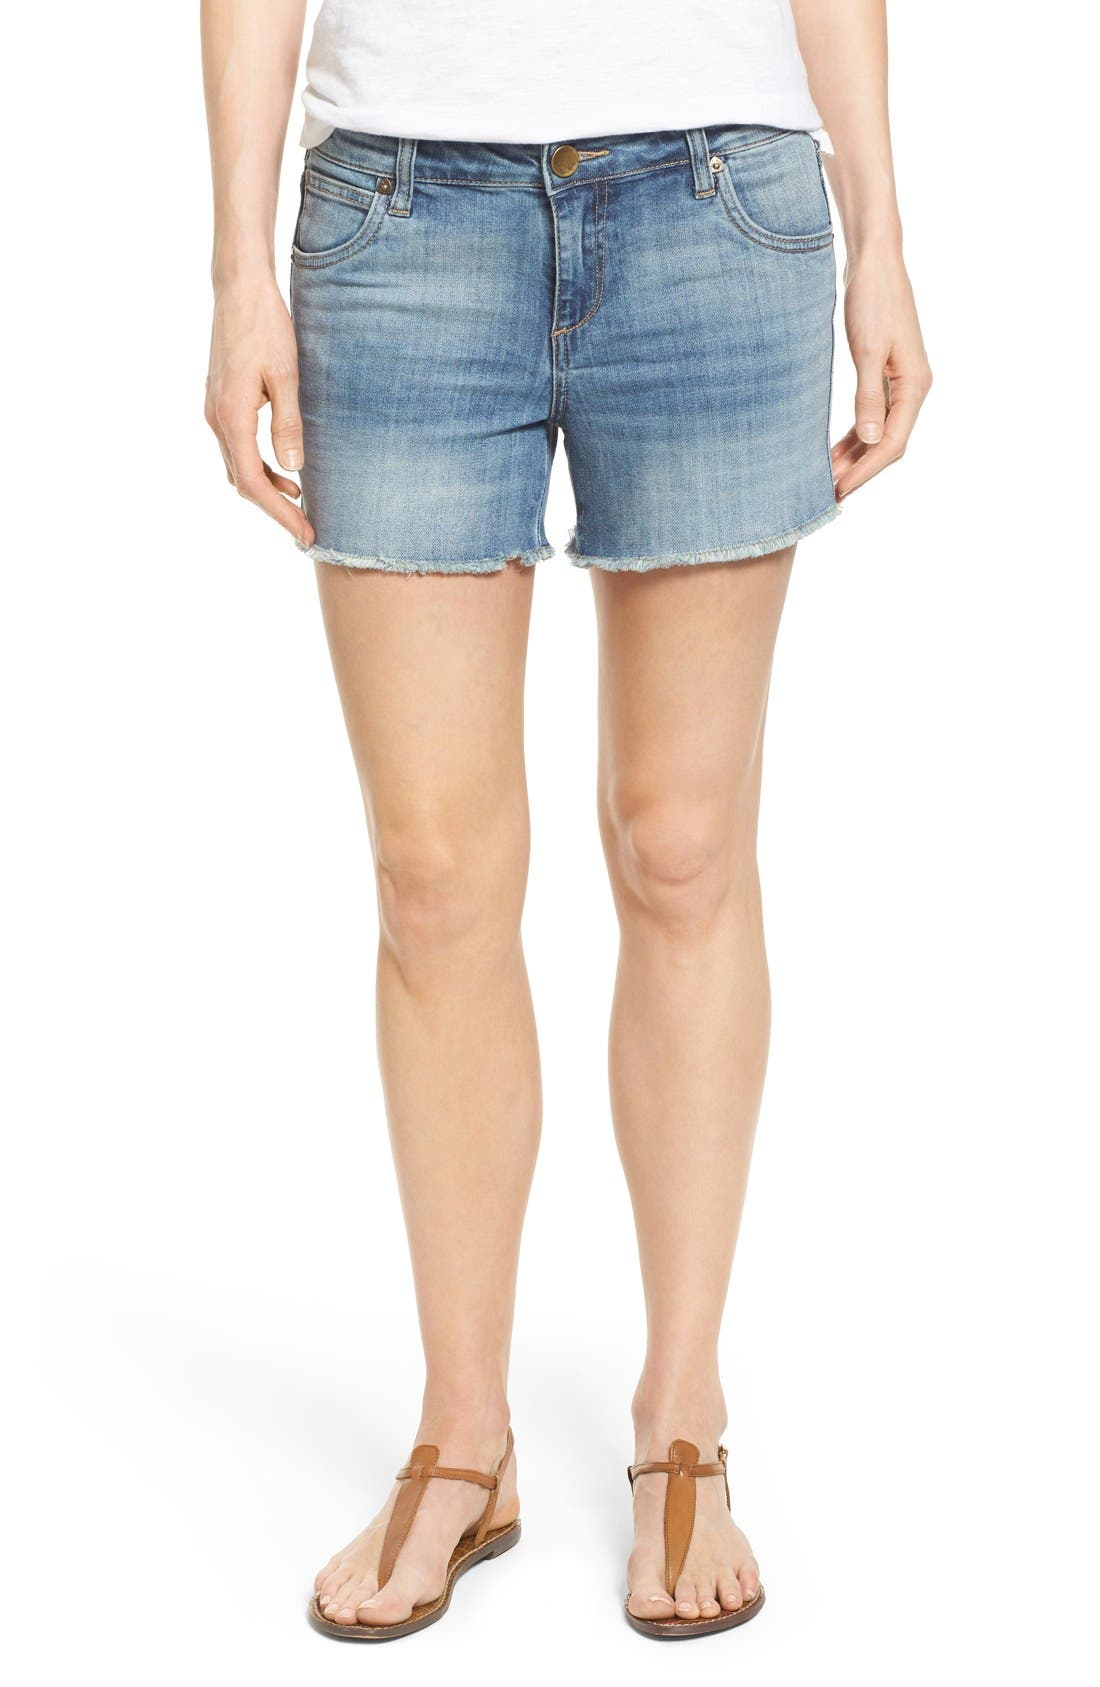 KUT from the Kloth 'Gidget' Denim Cutoff Shorts